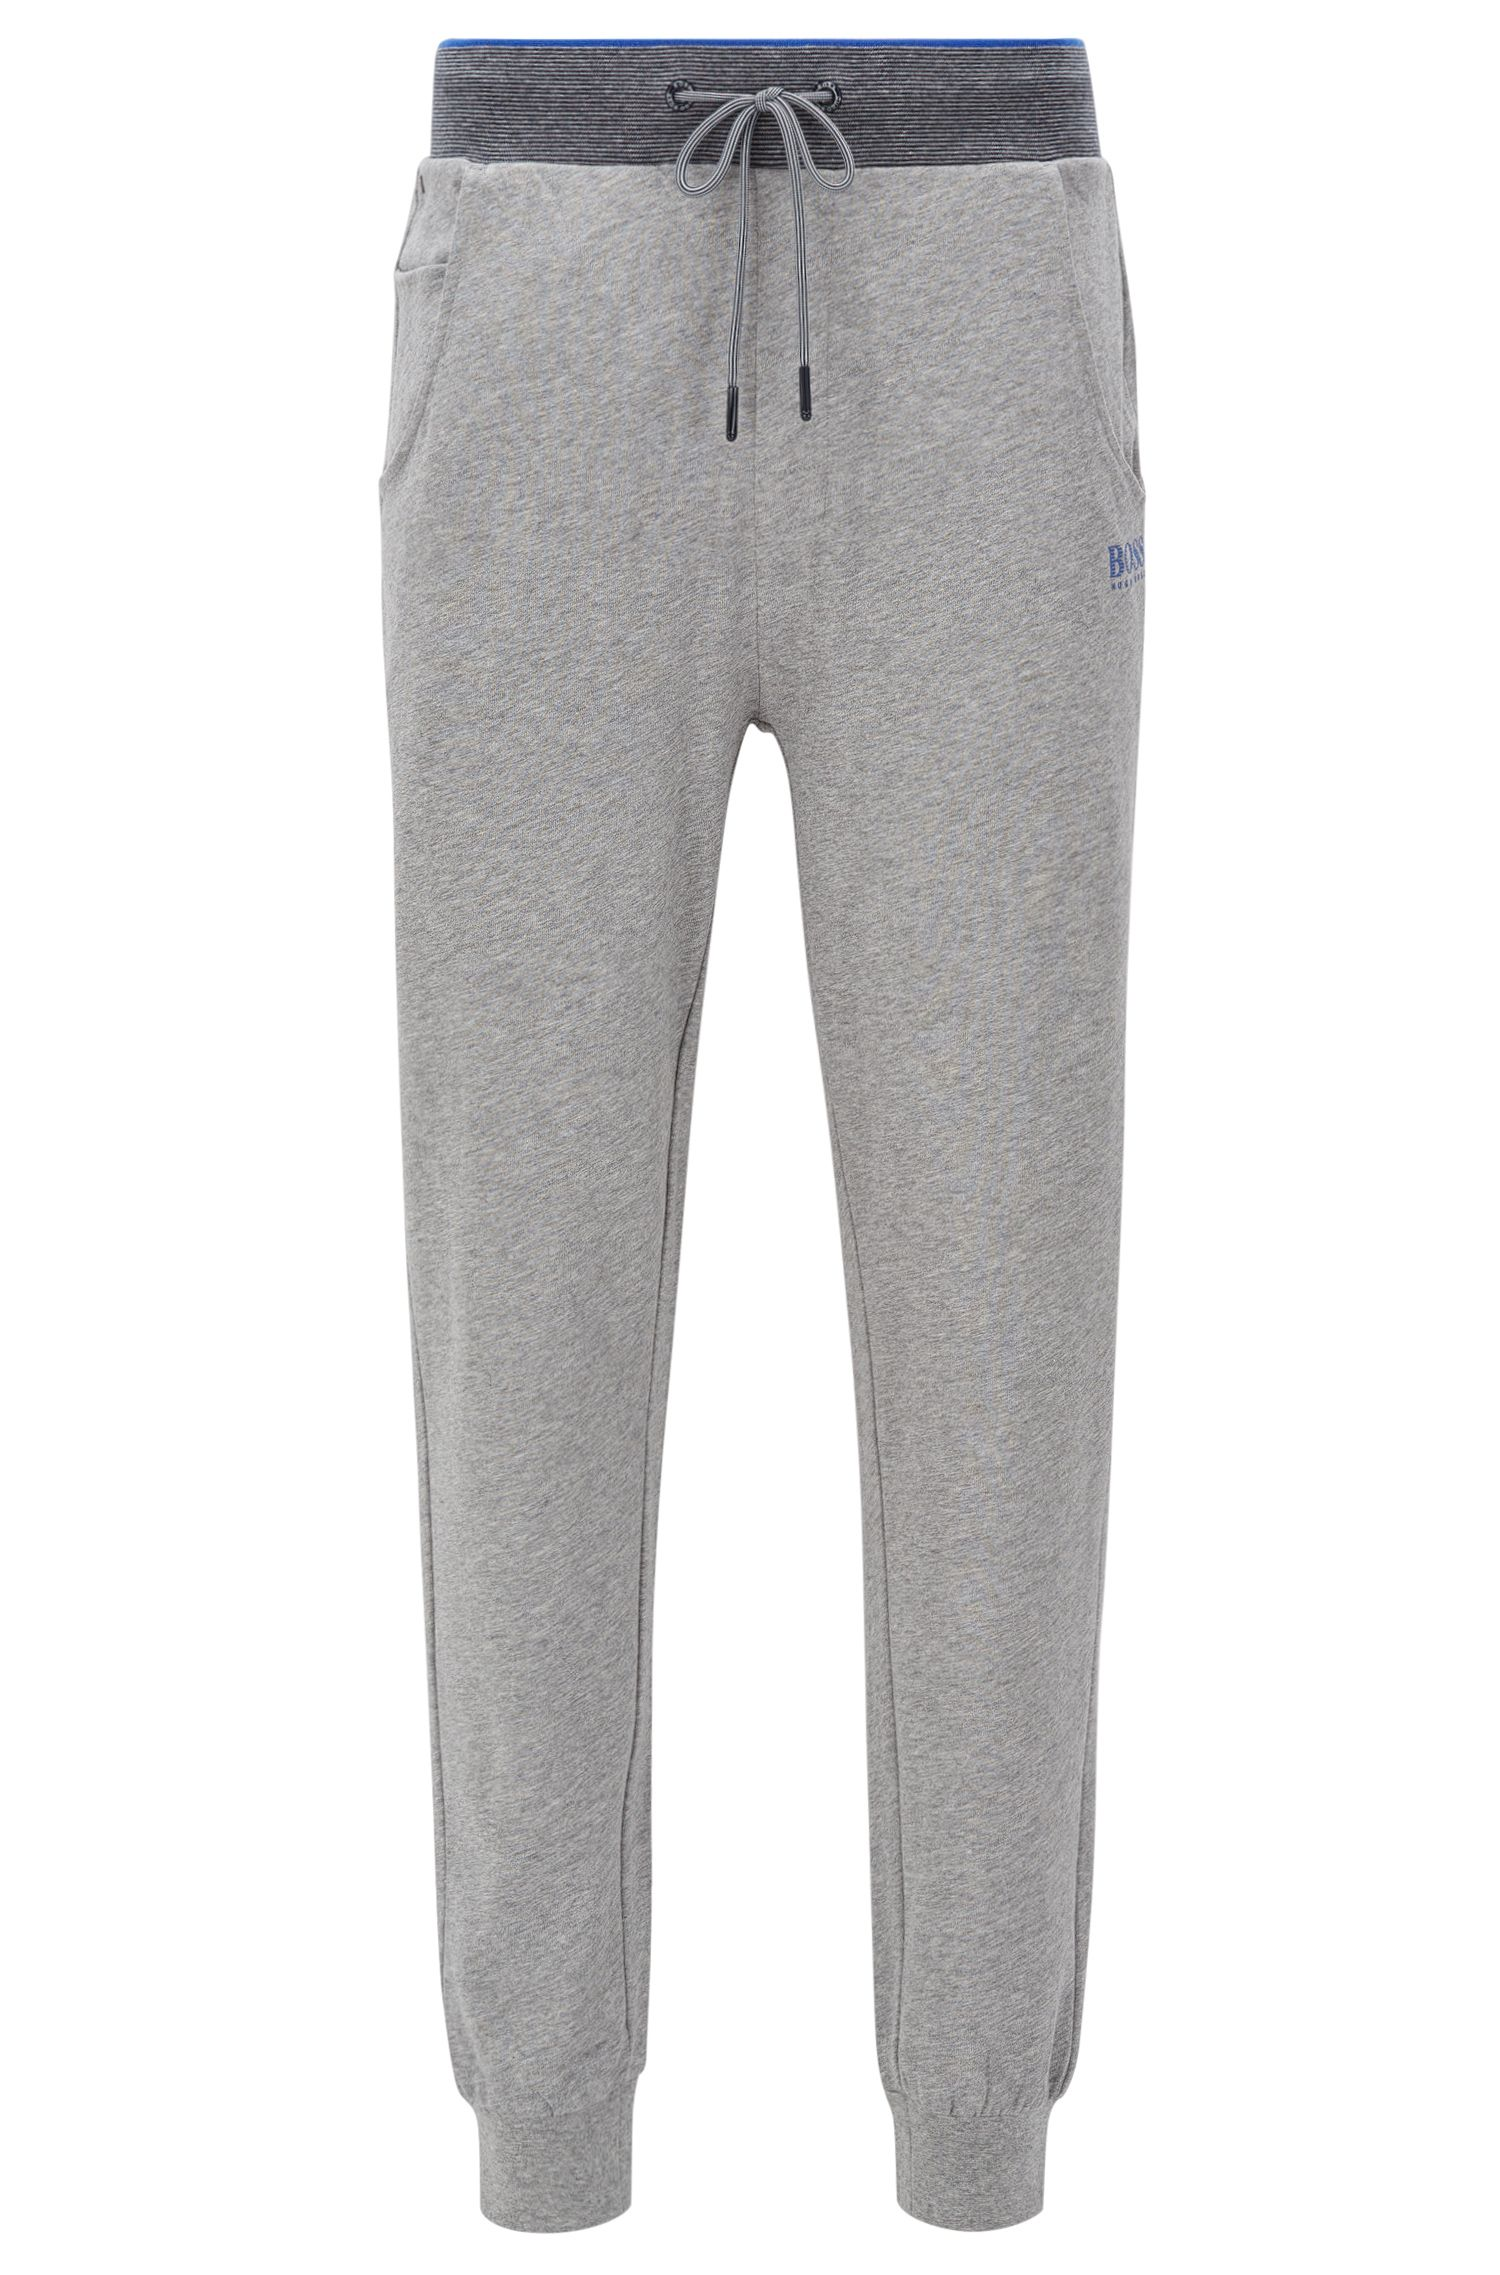 Cuffed jogging bottoms in cotton jersey